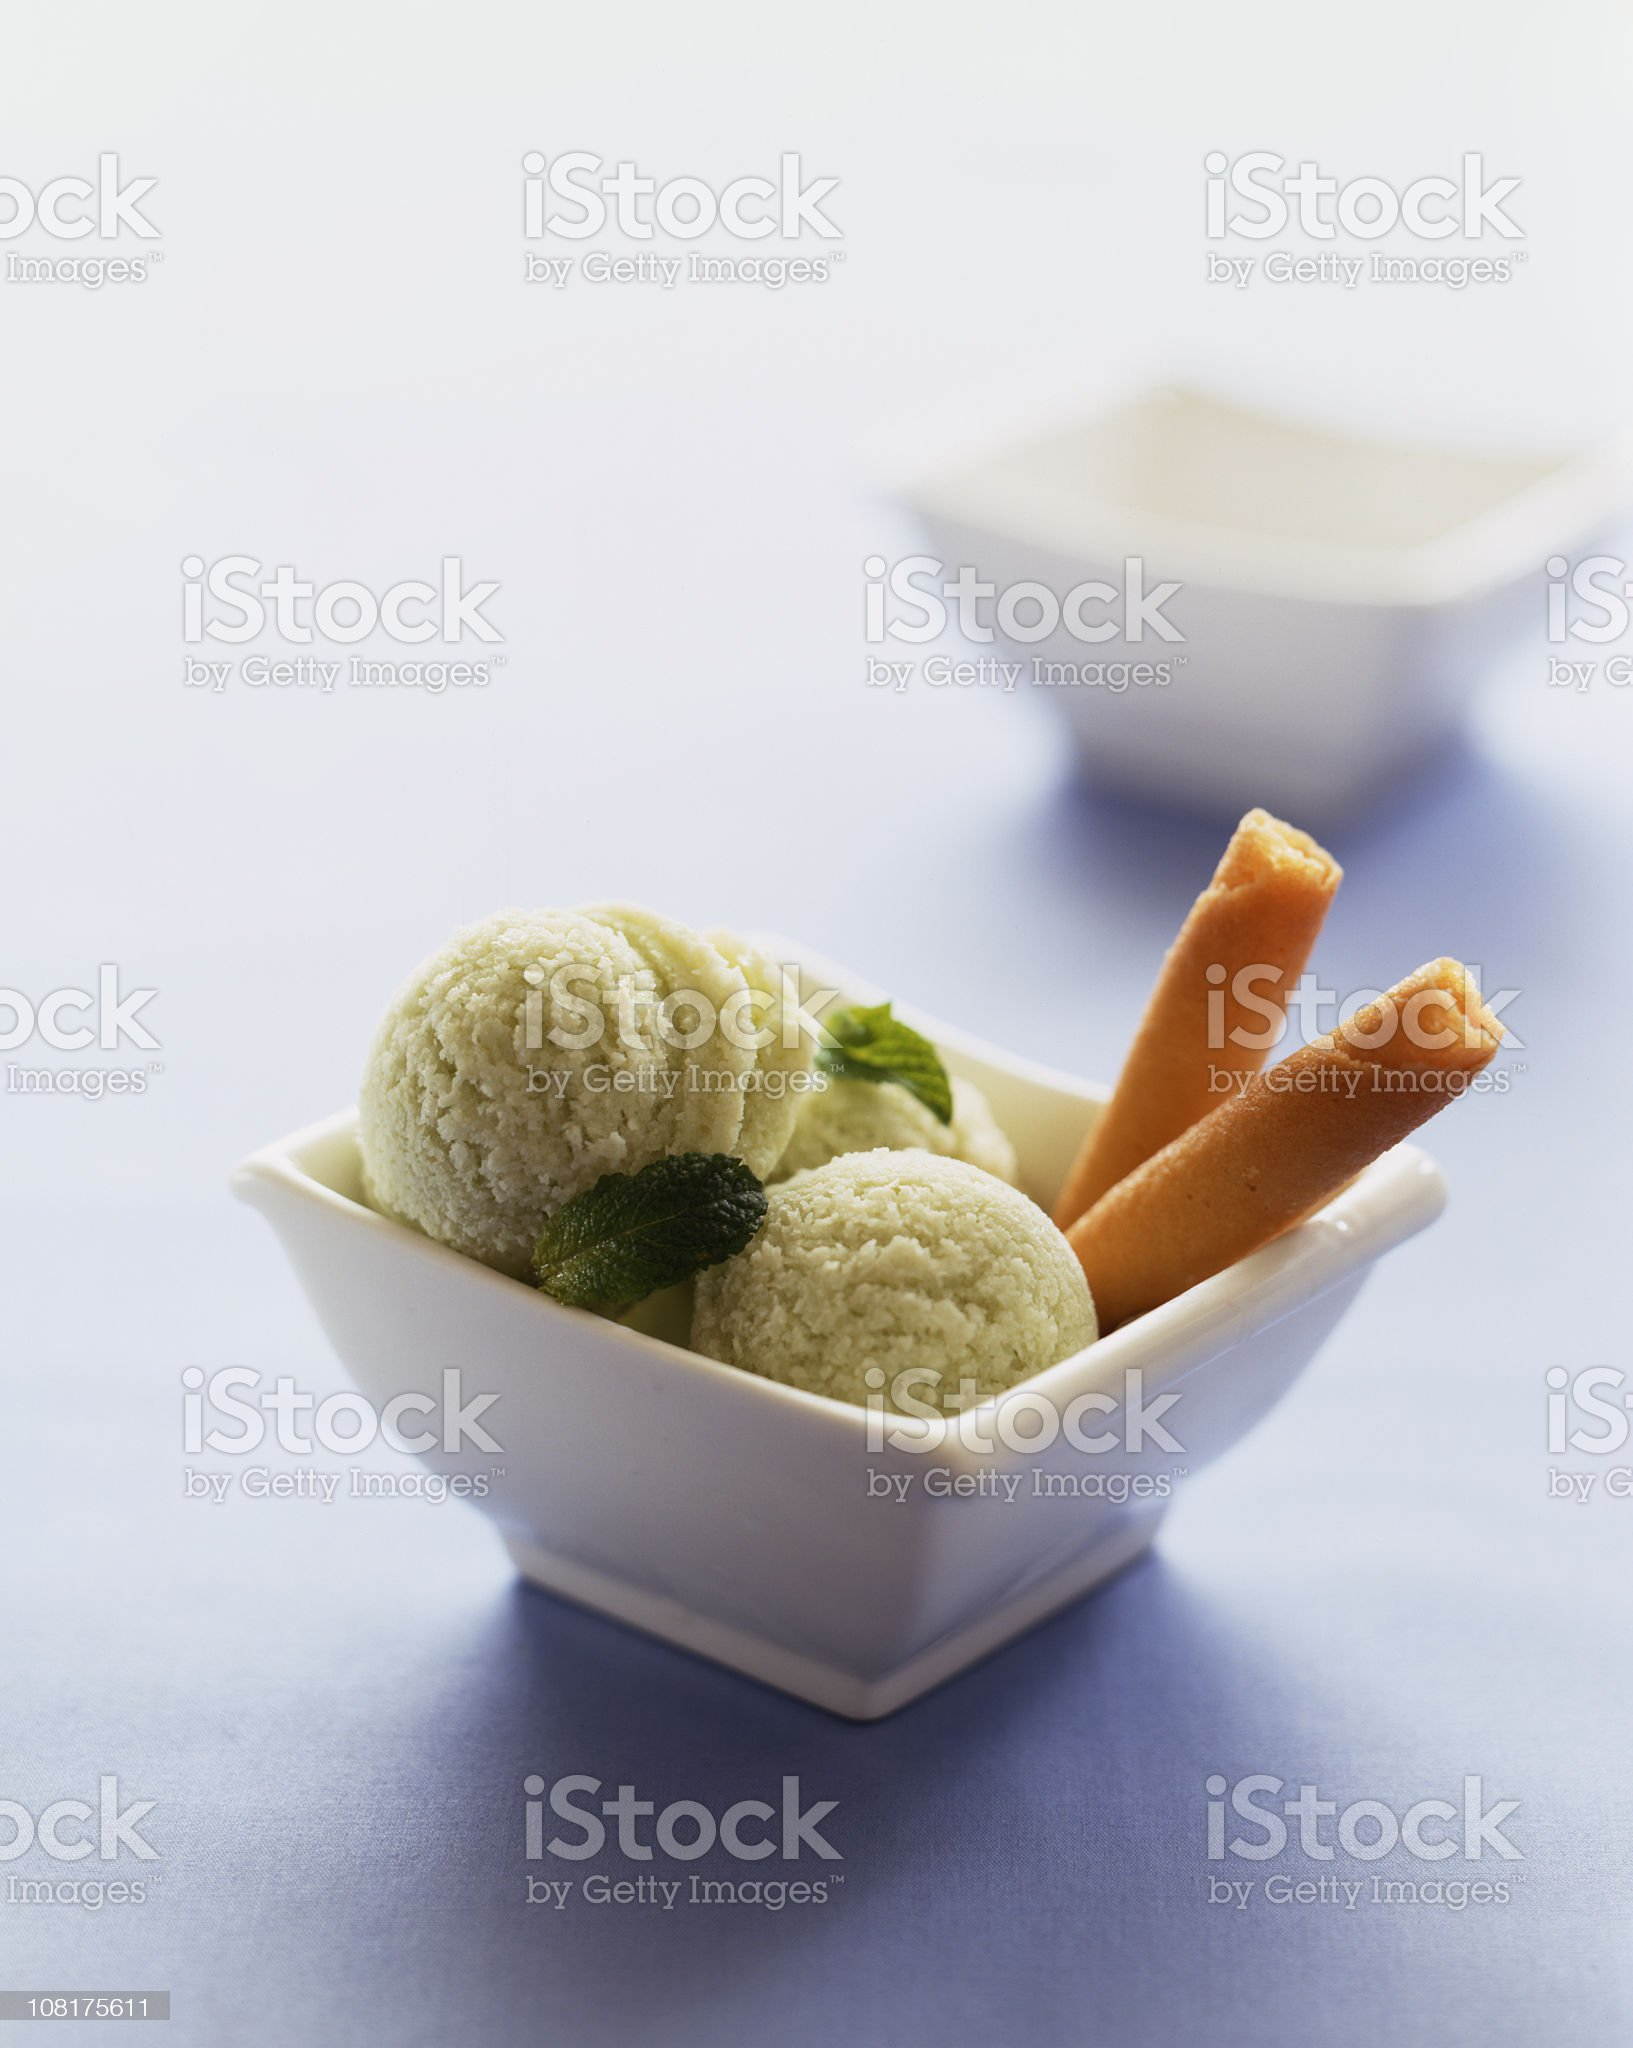 Mint Sorbet with Cookies in Bowl royalty-free stock photo